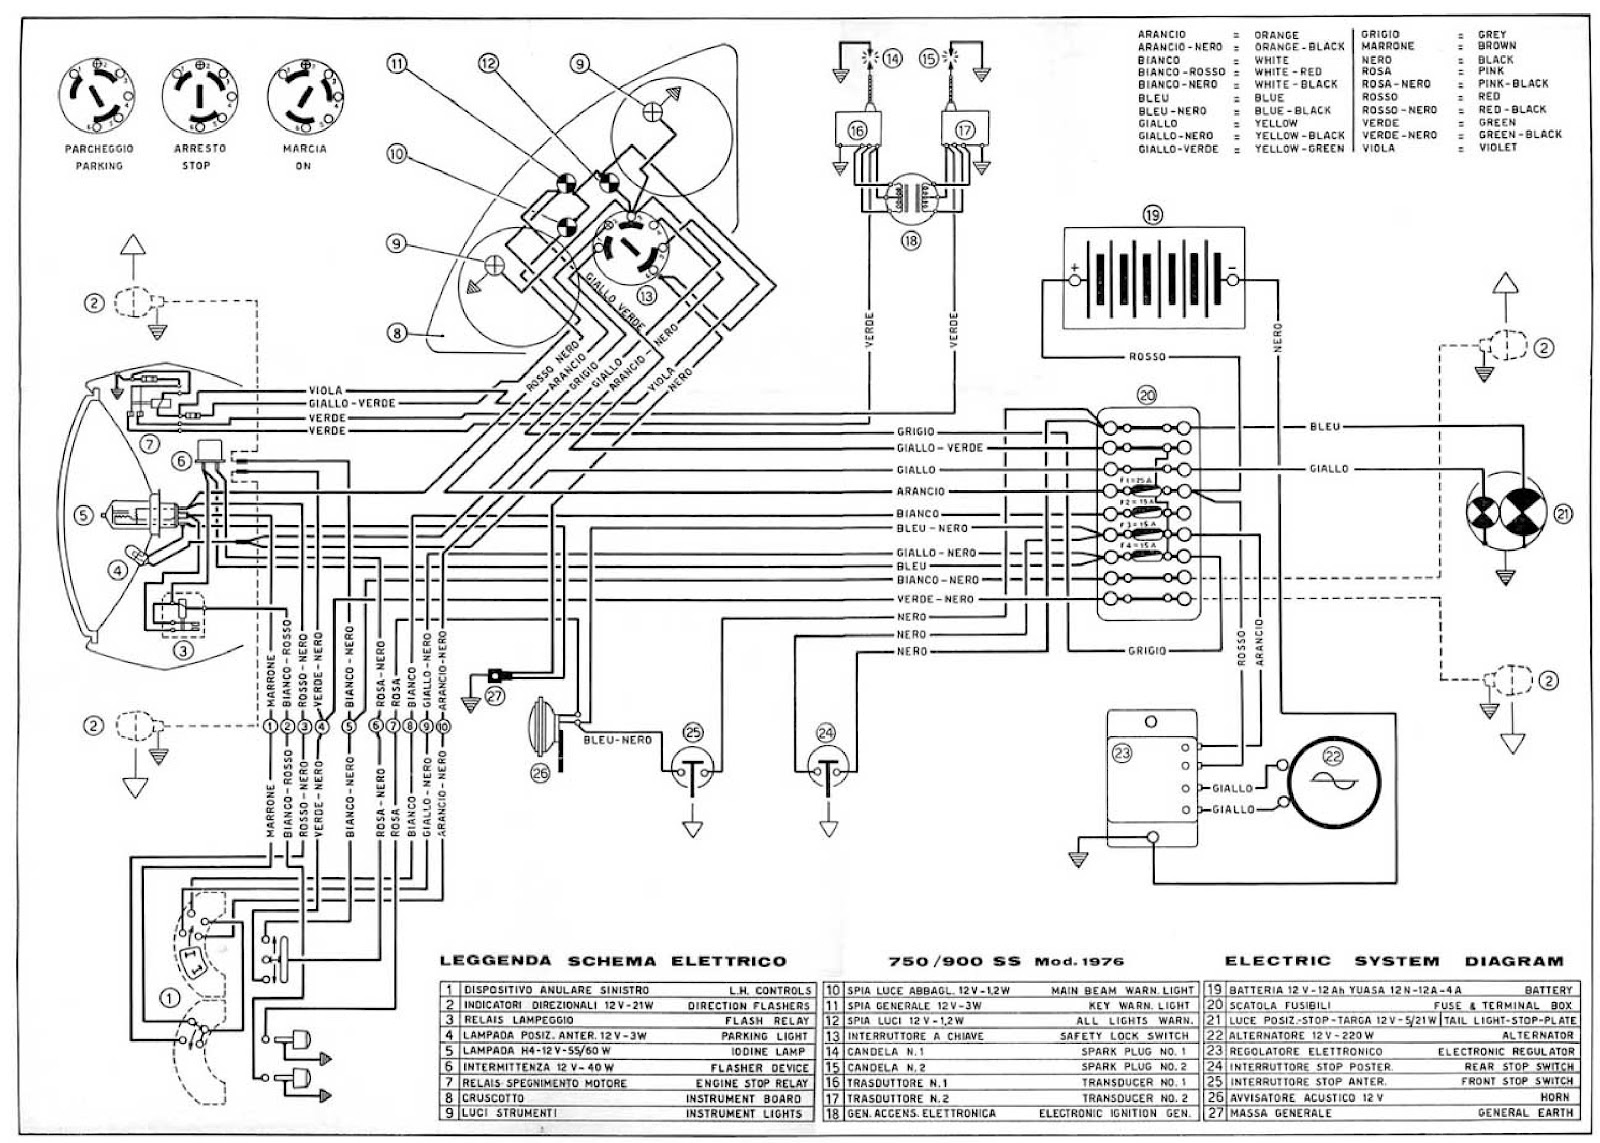 ducati ignition wiring diagram data wiring diagram 2002 ducati monster s4  specs ducati front wheel wiring